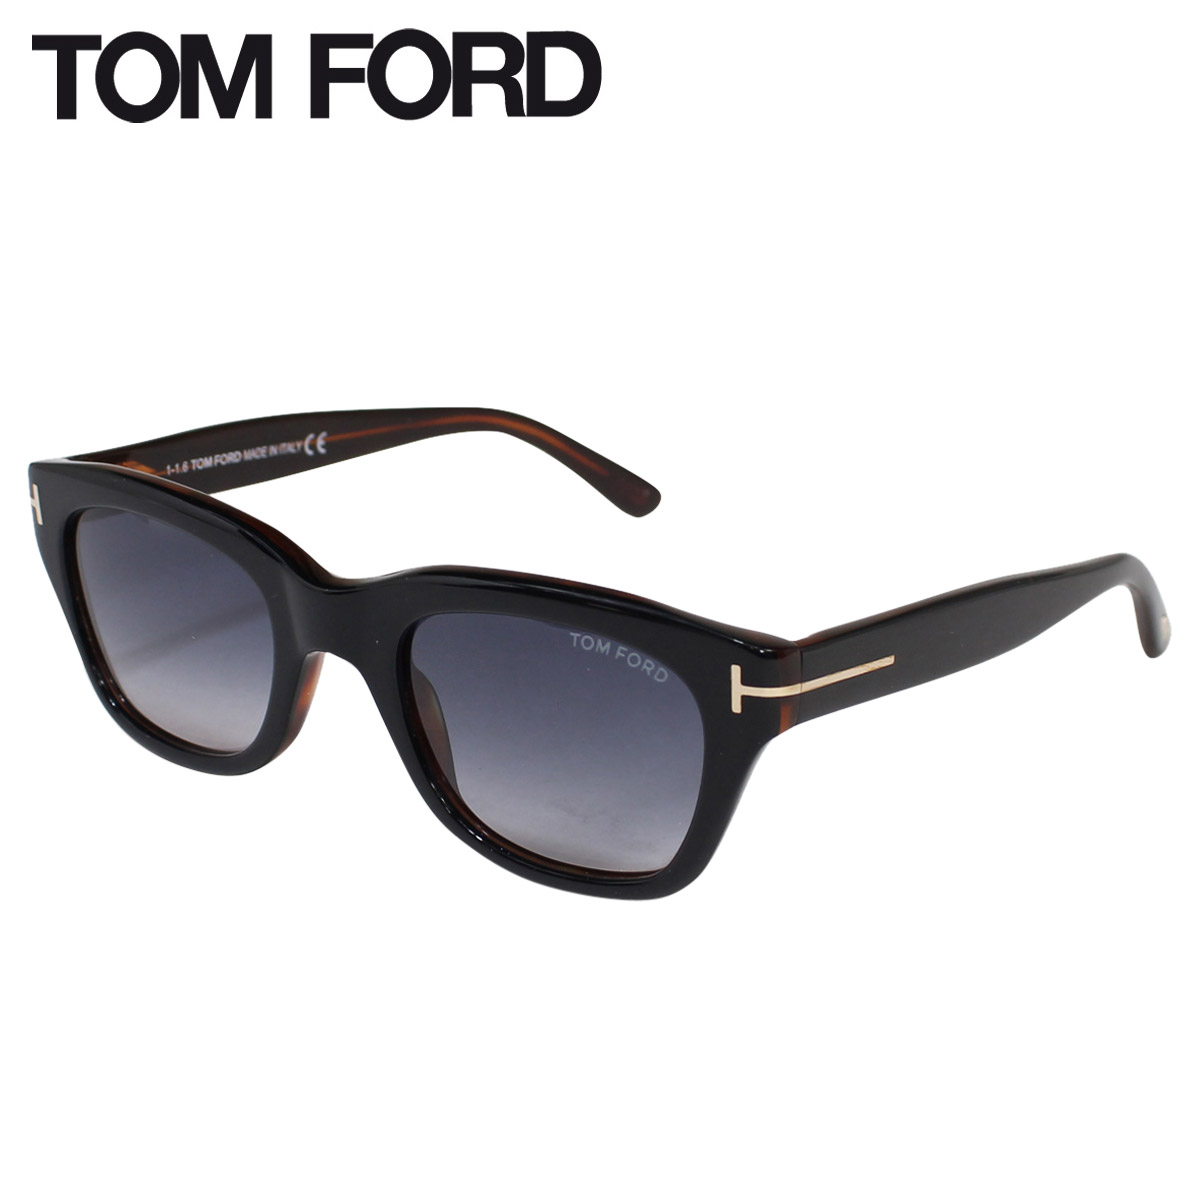 e4d75f23a0b Tom Ford sunglasses mens Womens TOM FORD eyewear SUNGLASSES FT0237 SNOWDON  Italy made by  11   29 new in stock